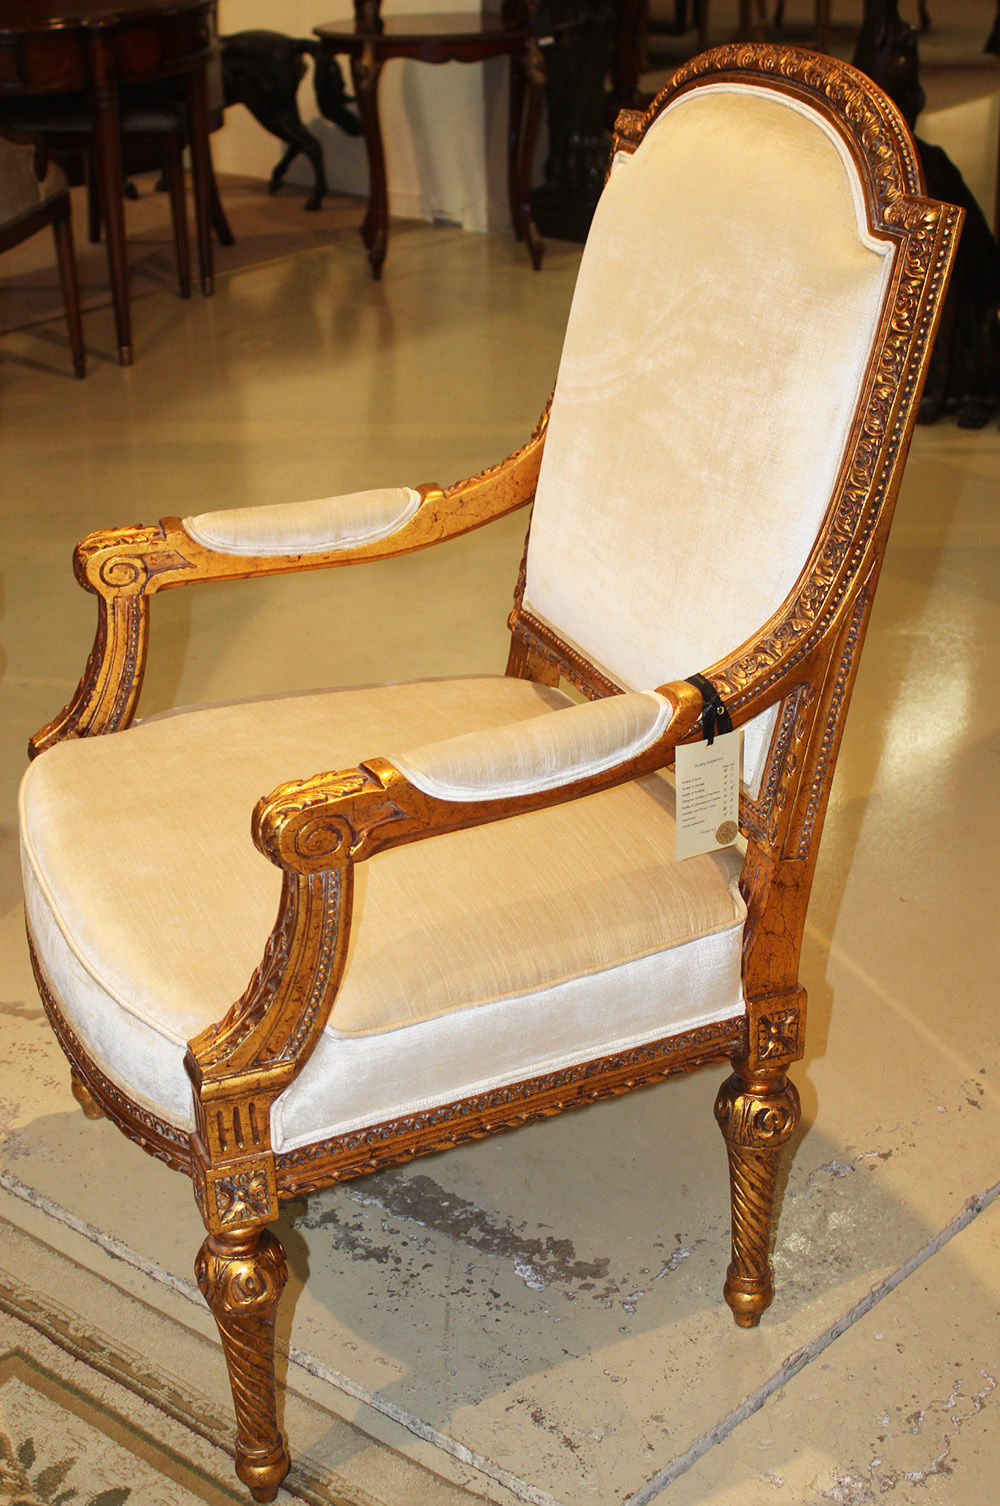 Antique louis xvi chair - Pair Large Scale Gold Gilded Carved French Louis Xvi Arm Chairs Fauteuil